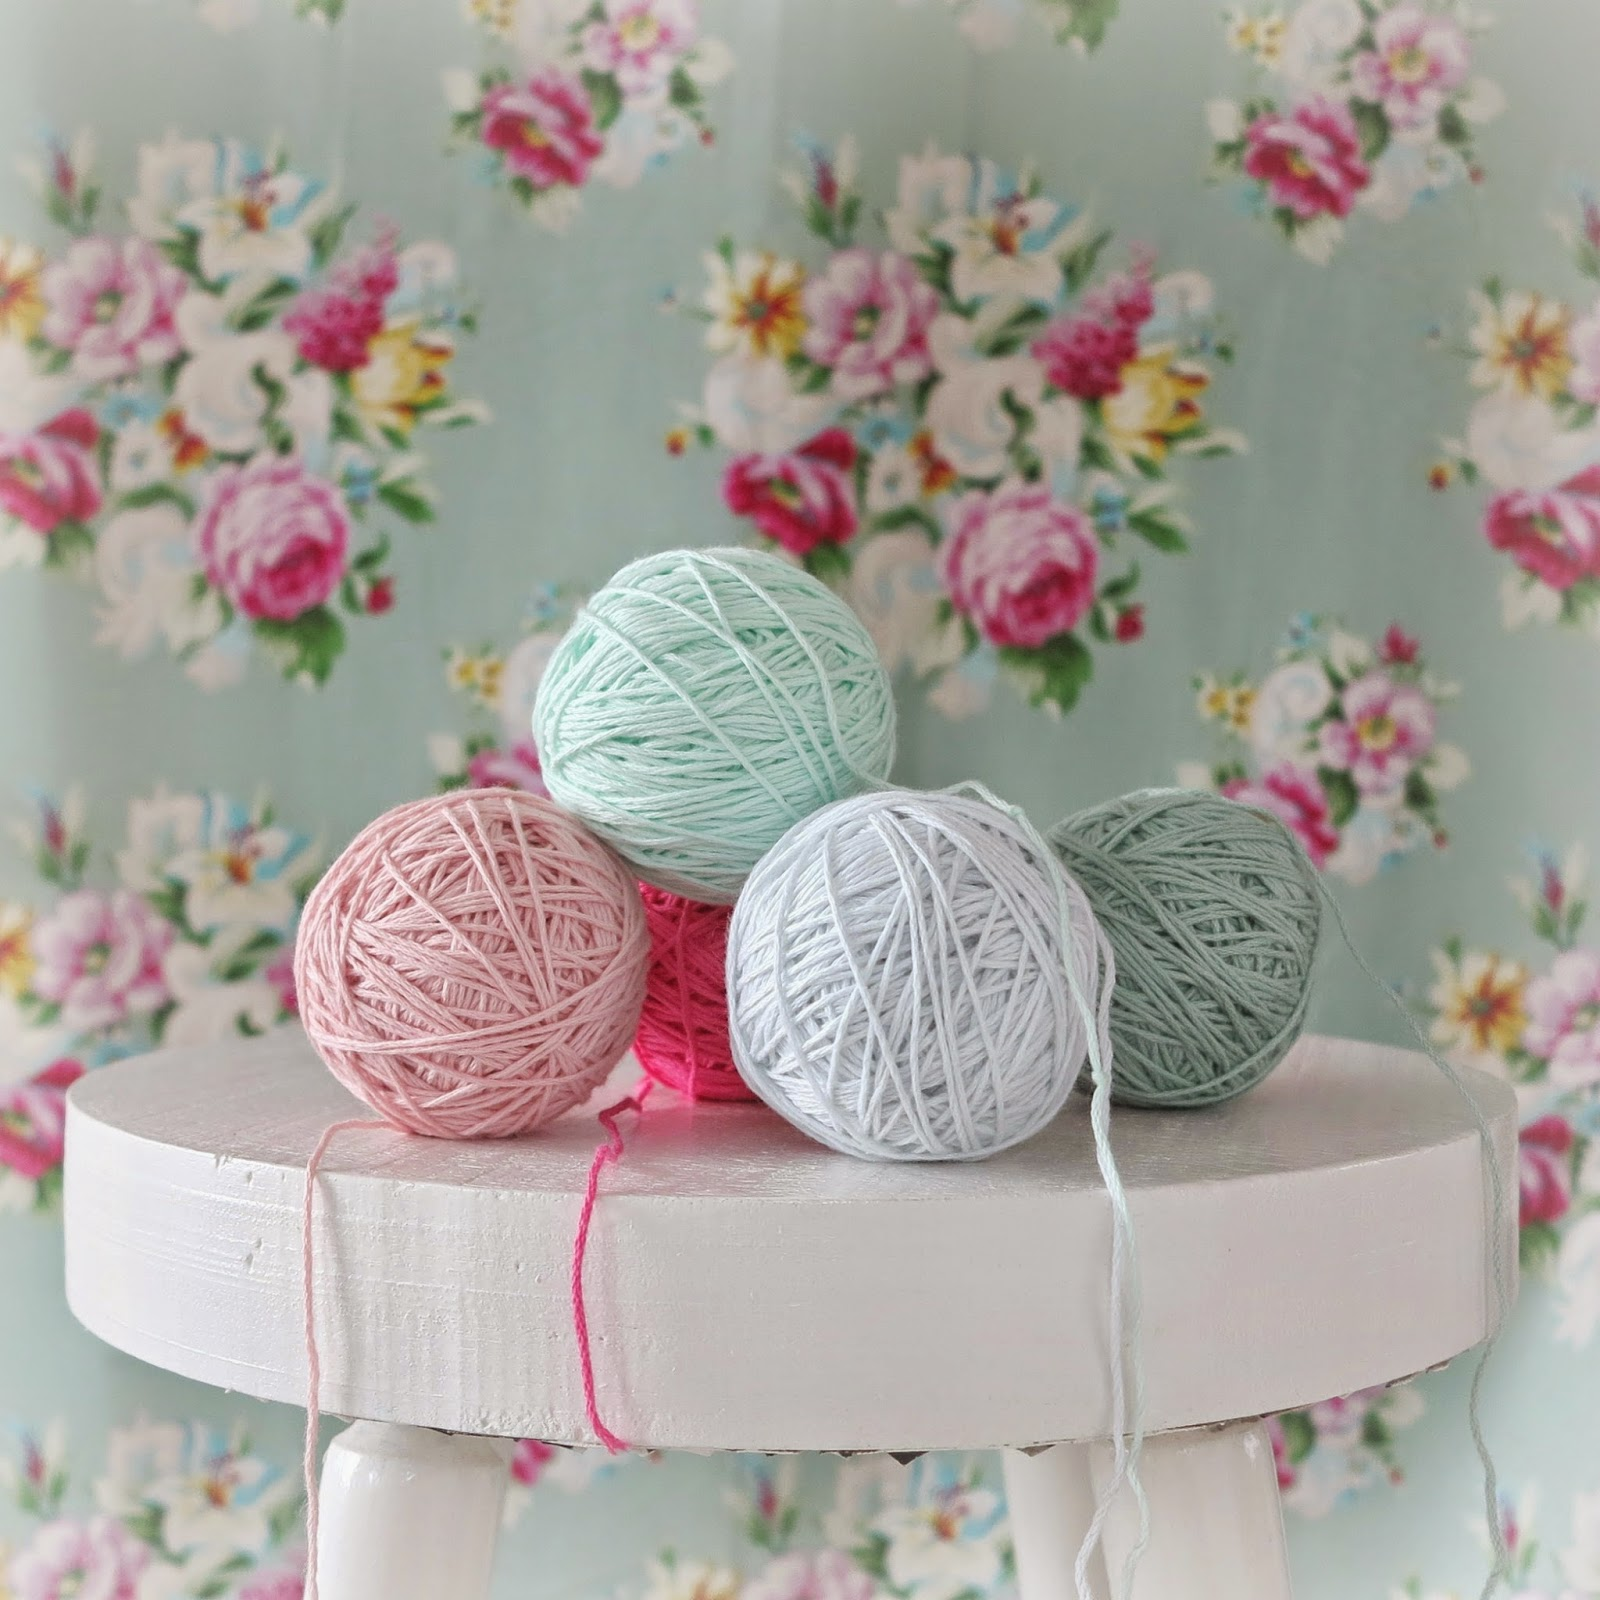 ByHaafner, organic cotton yarn, For Nature, Rosários4, flowers, pastels